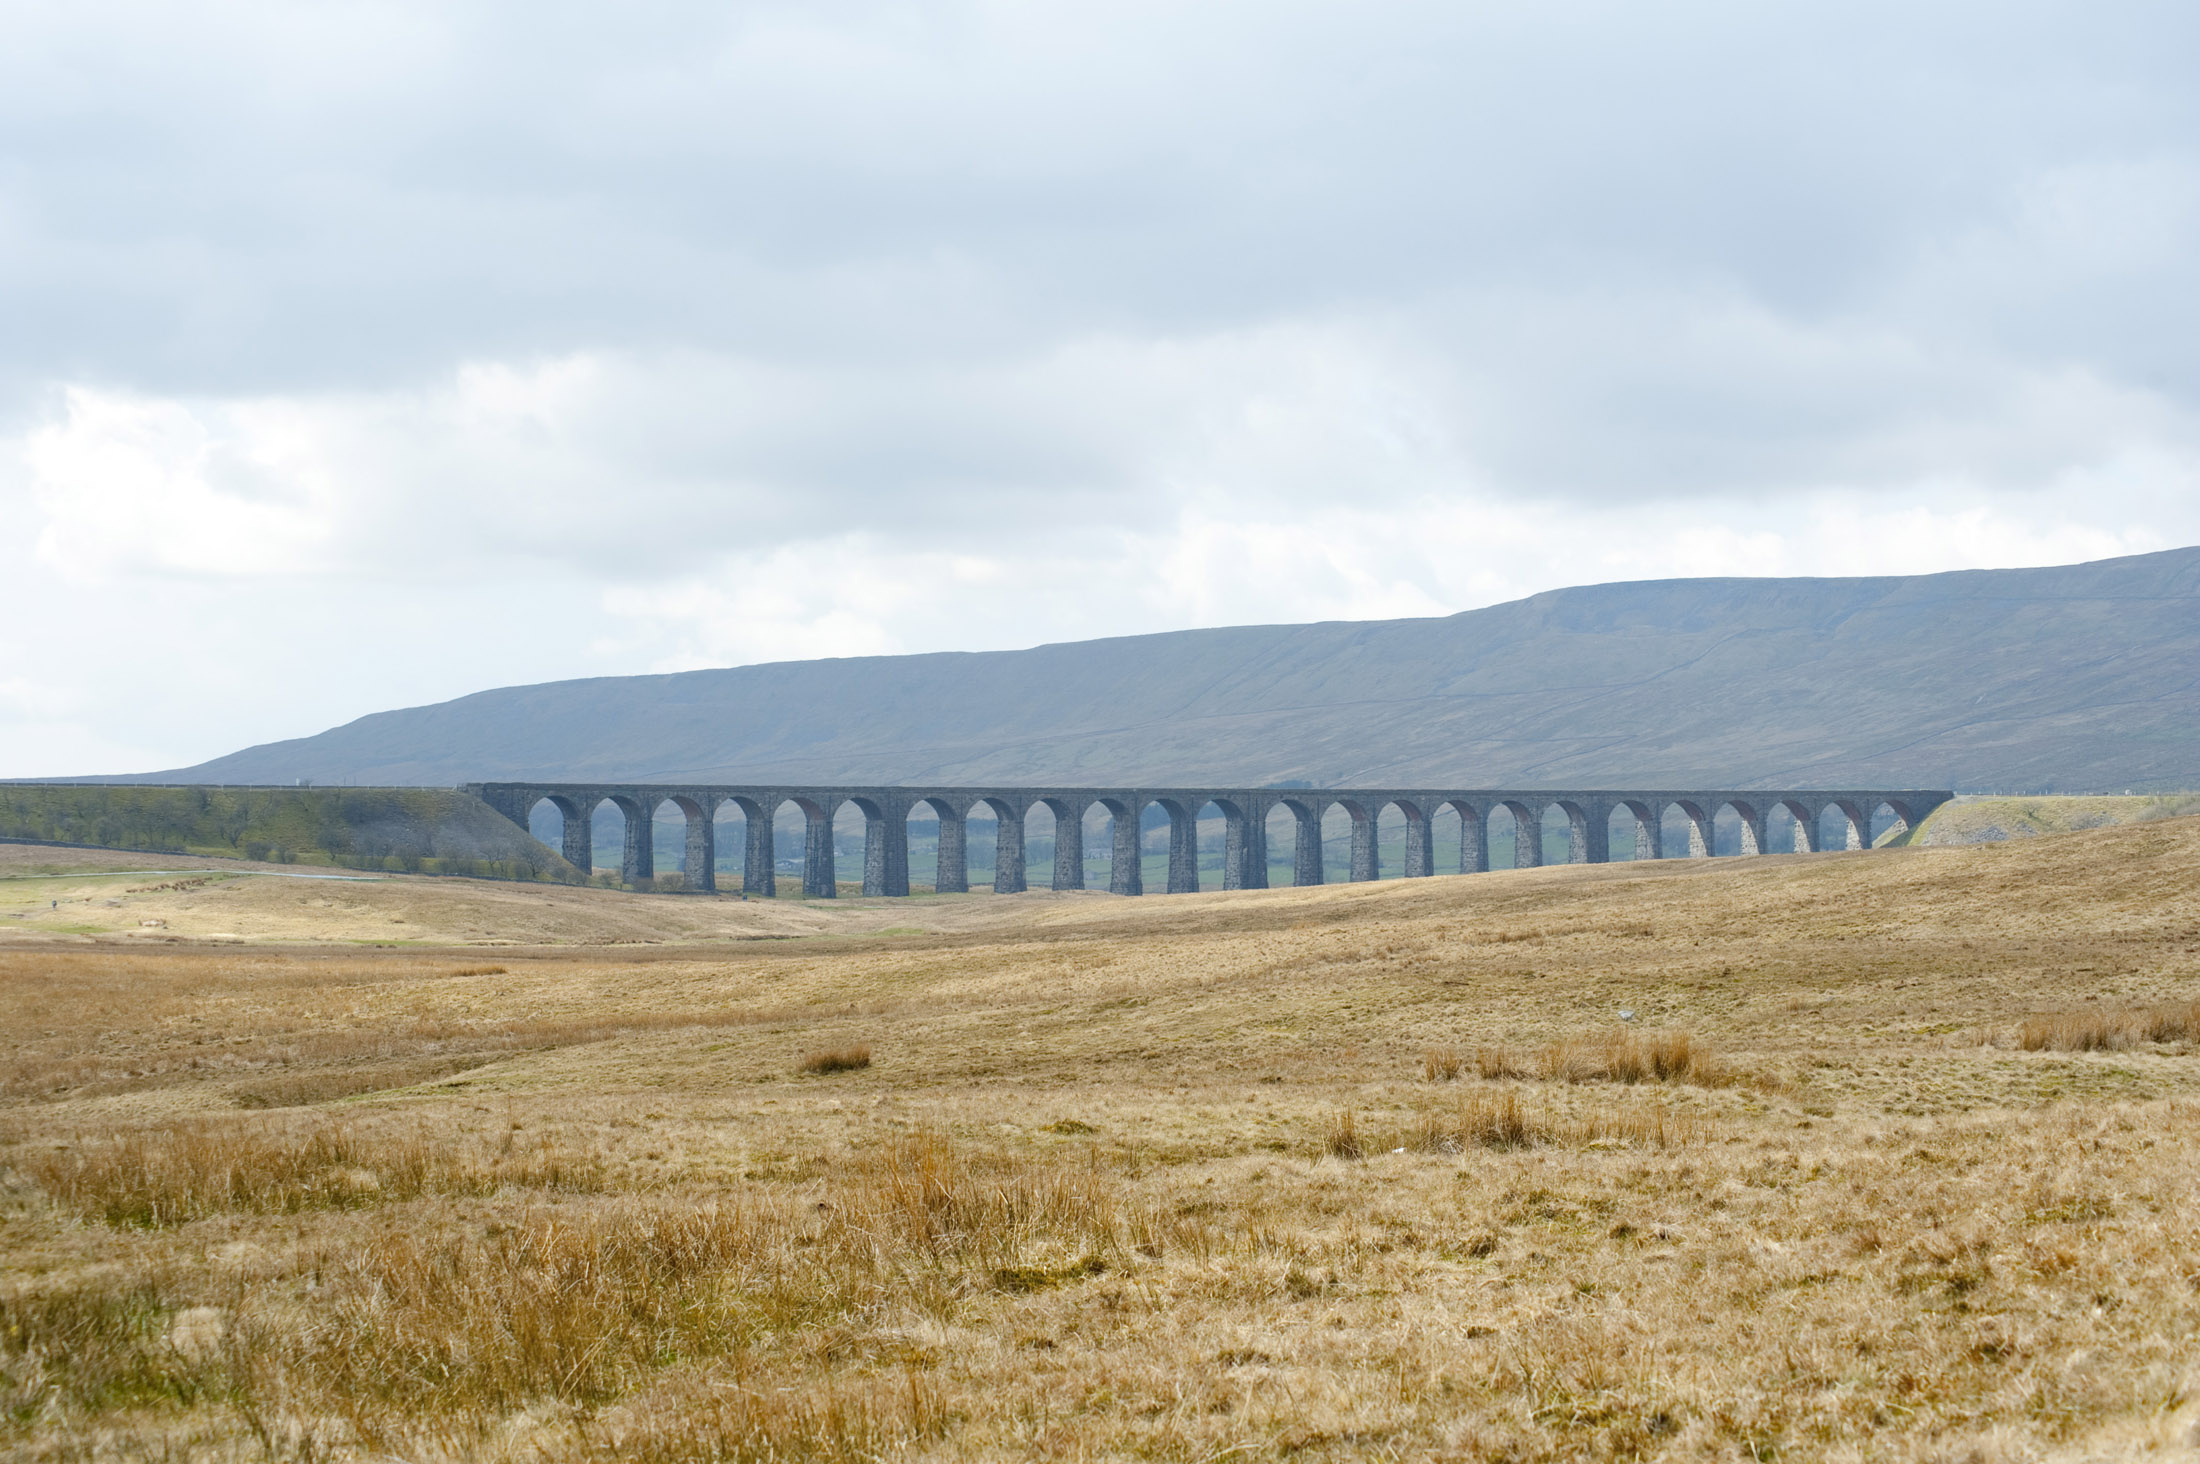 a distant view of the ribble head viaduct, yorkshire, england